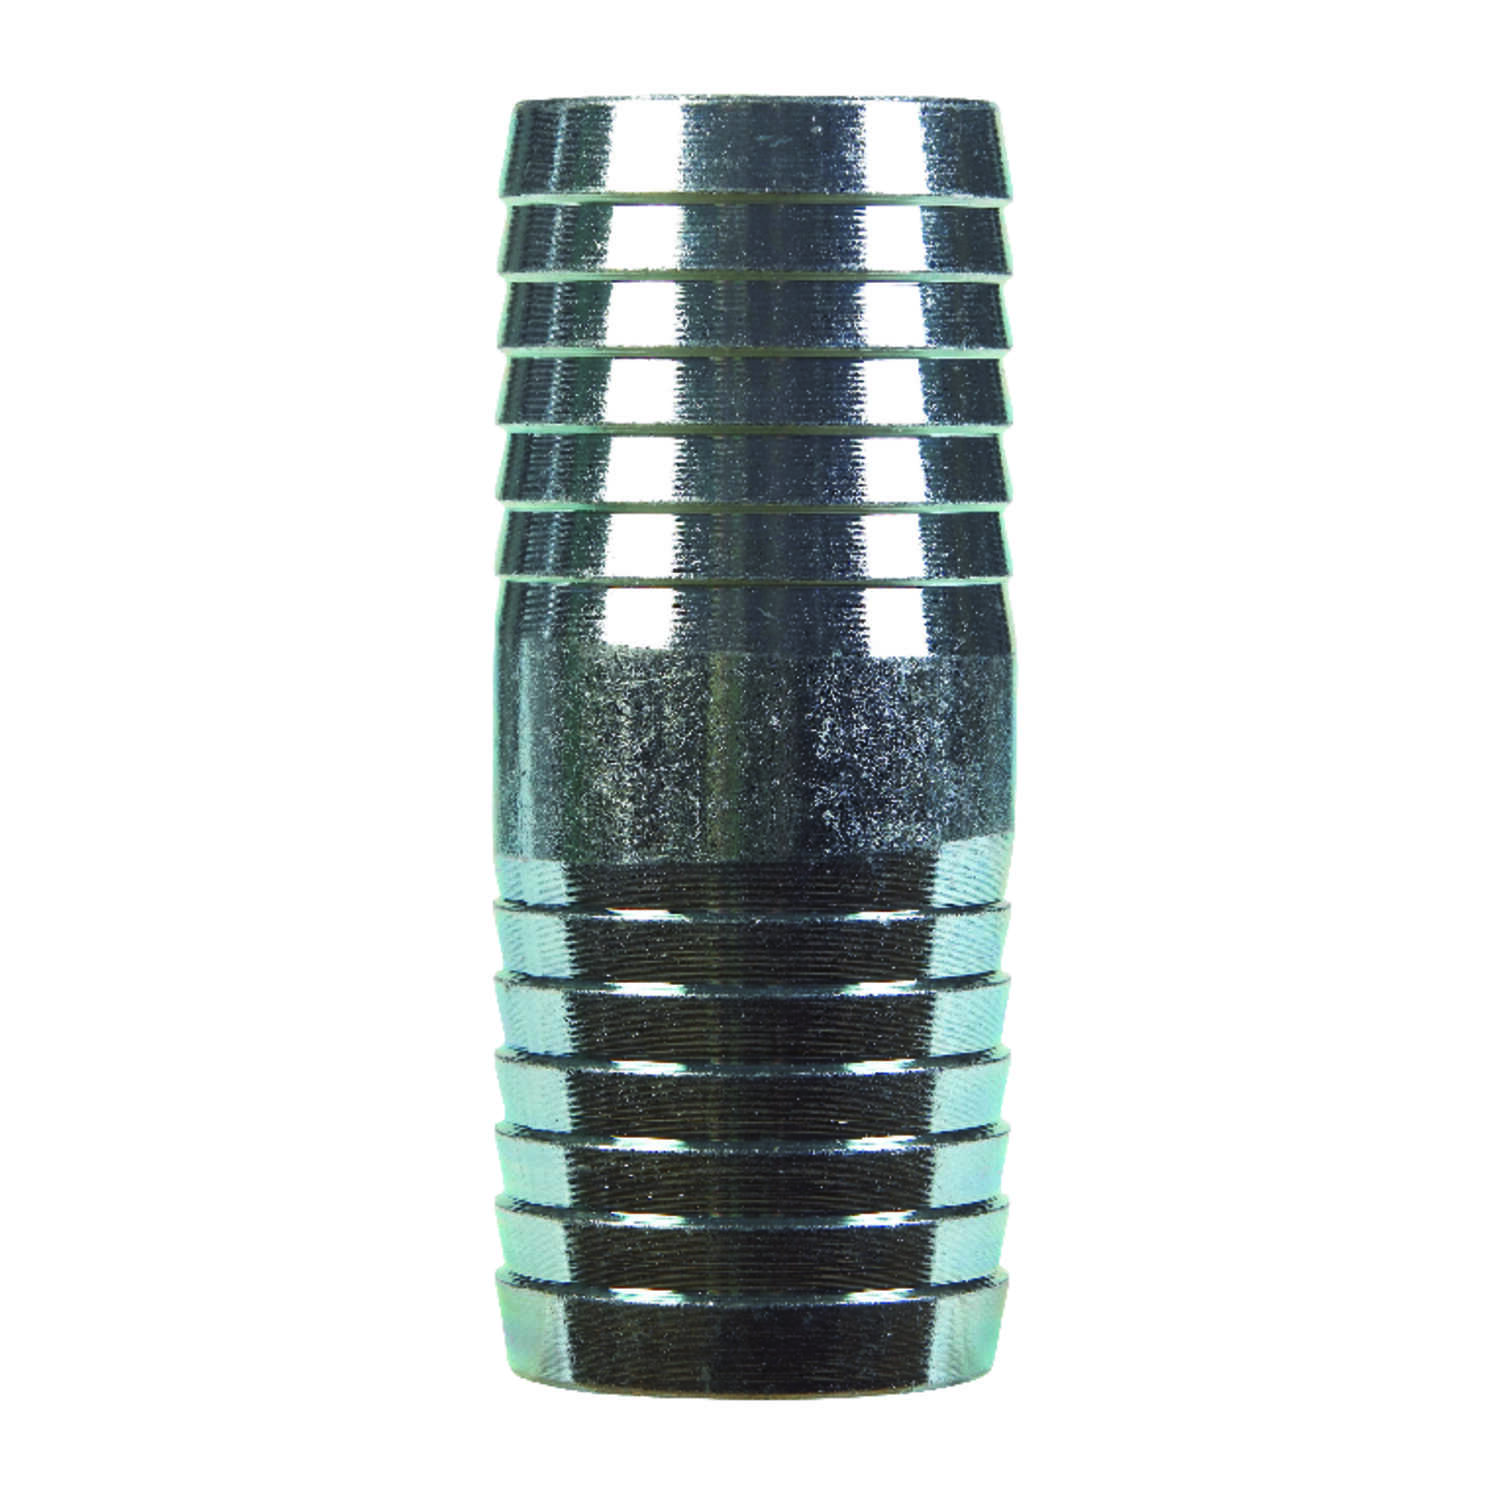 B & K  3/4 in. Barb   x 3/4 in. Dia. Barb  Galvanized Steel  Coupling